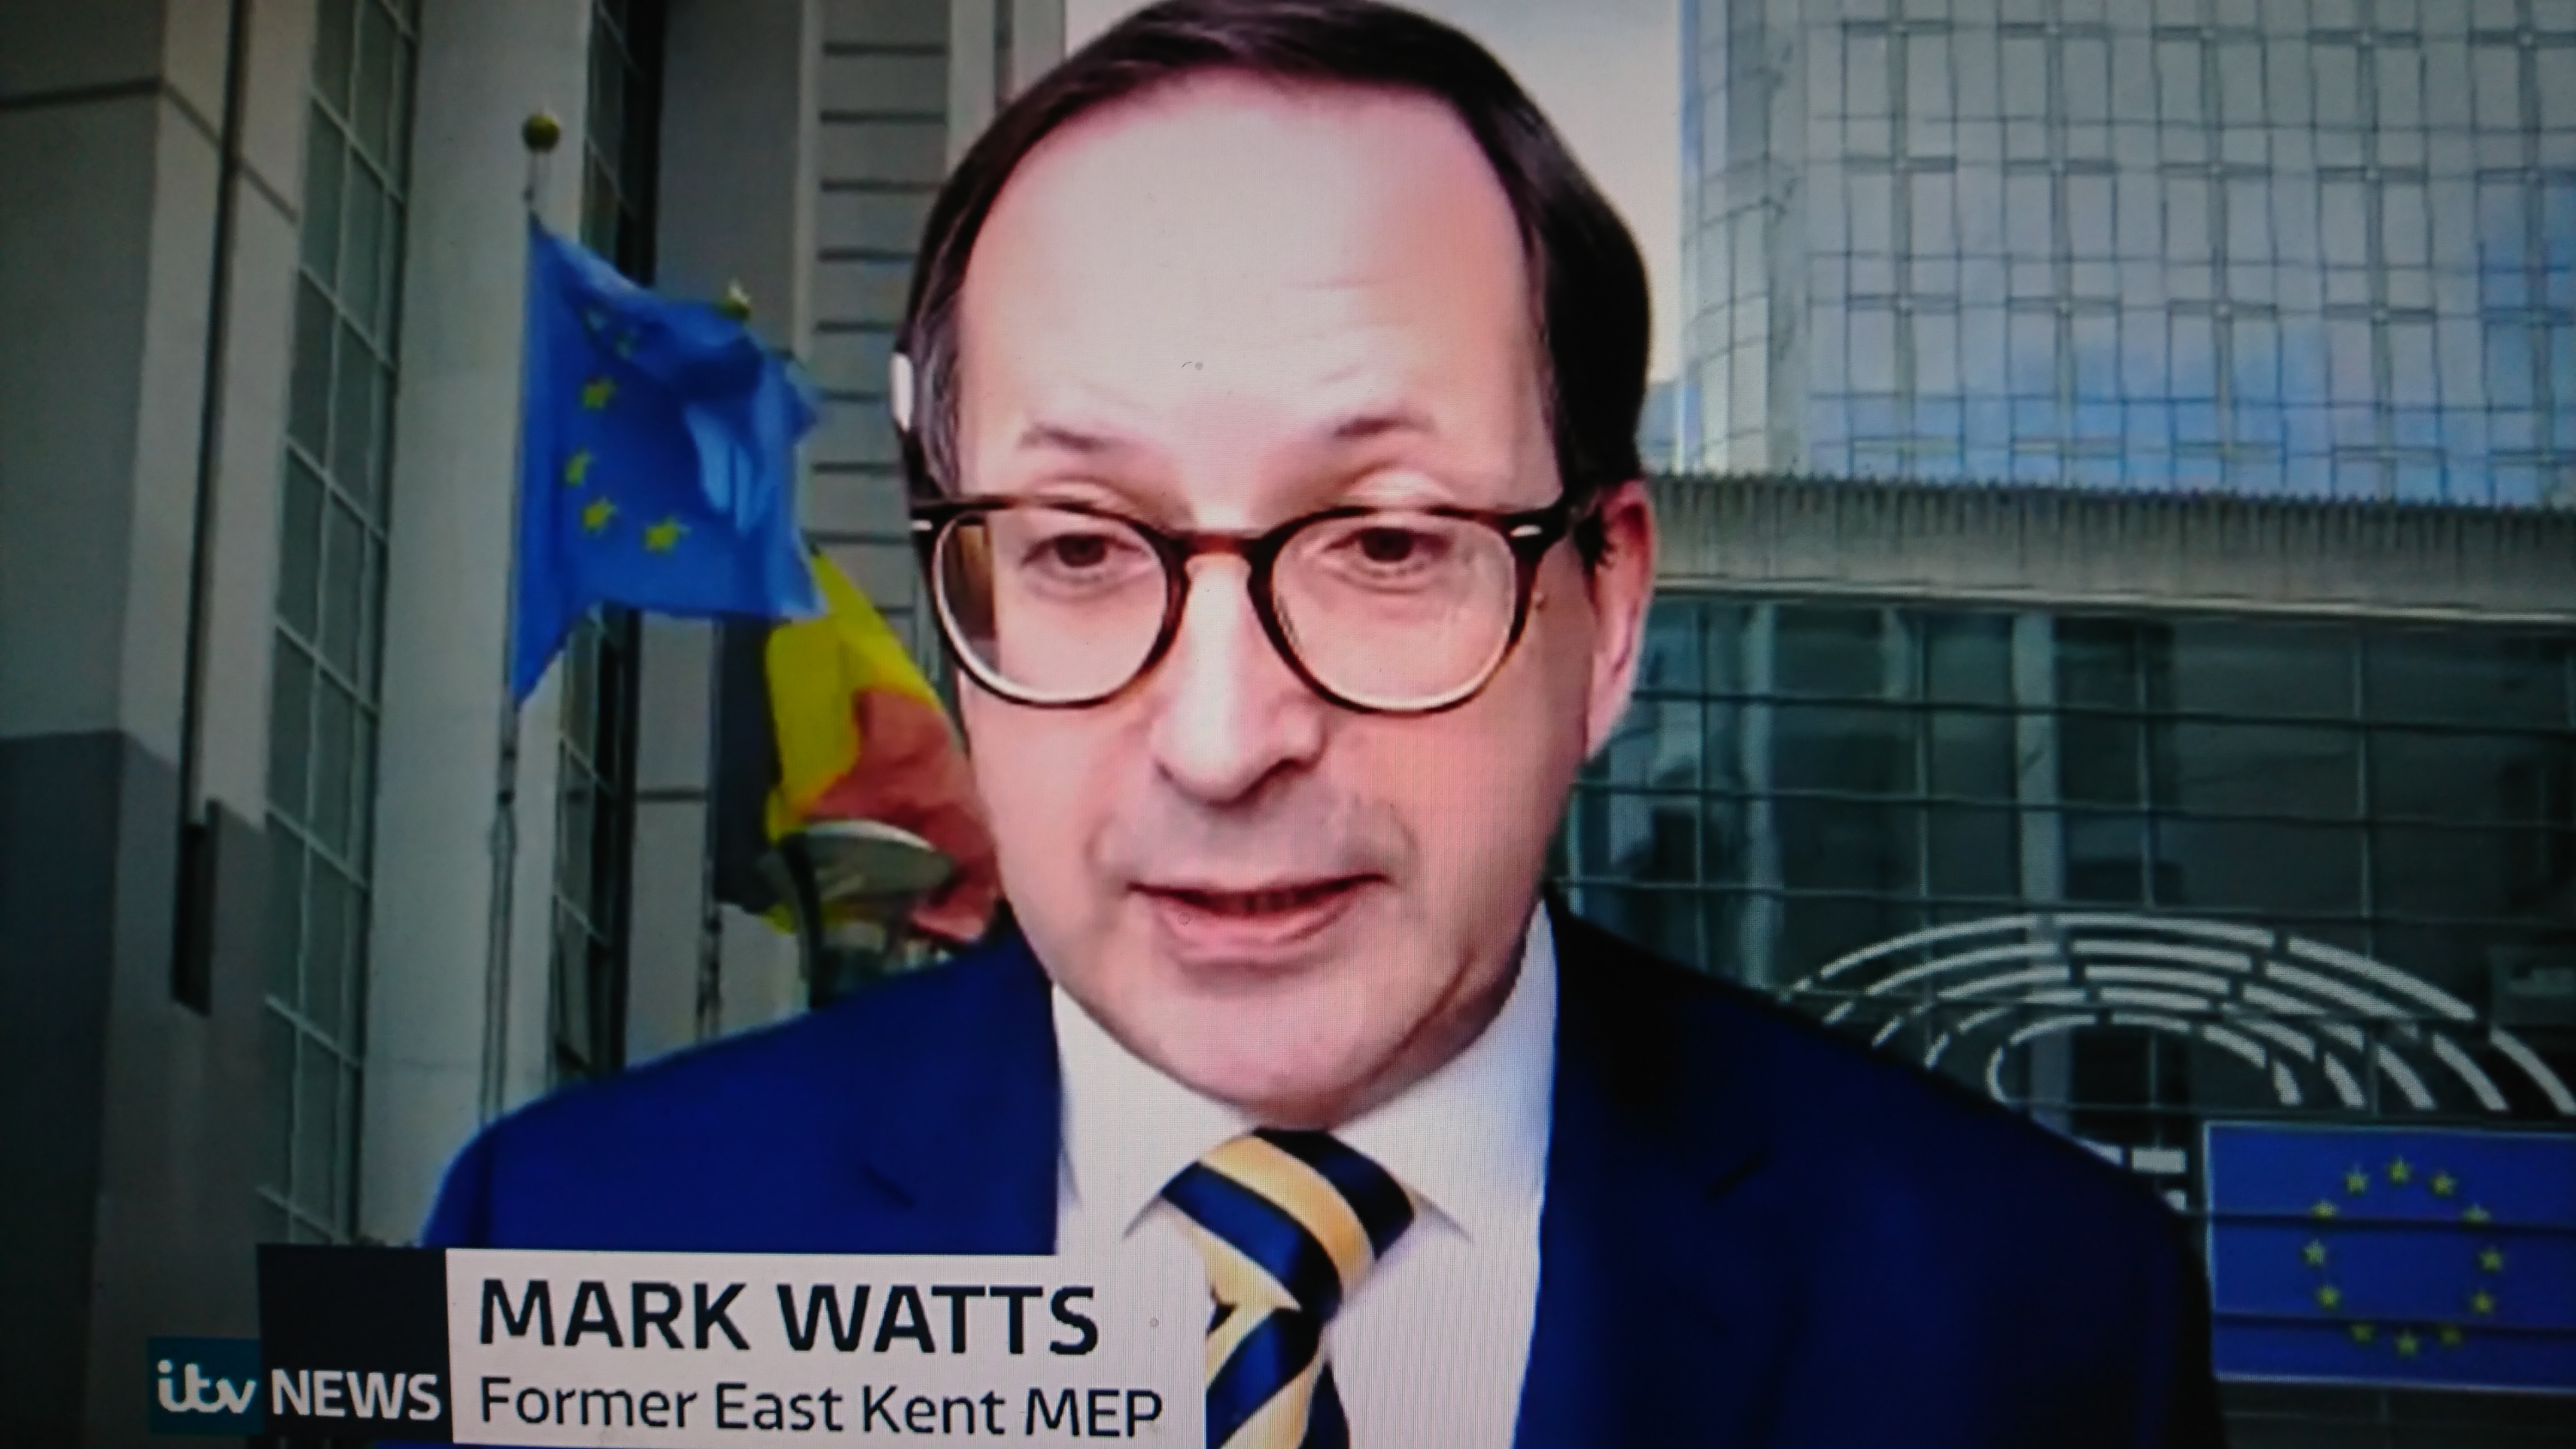 LP Brussels Director Mark Watts on ITV News Brexit Programme